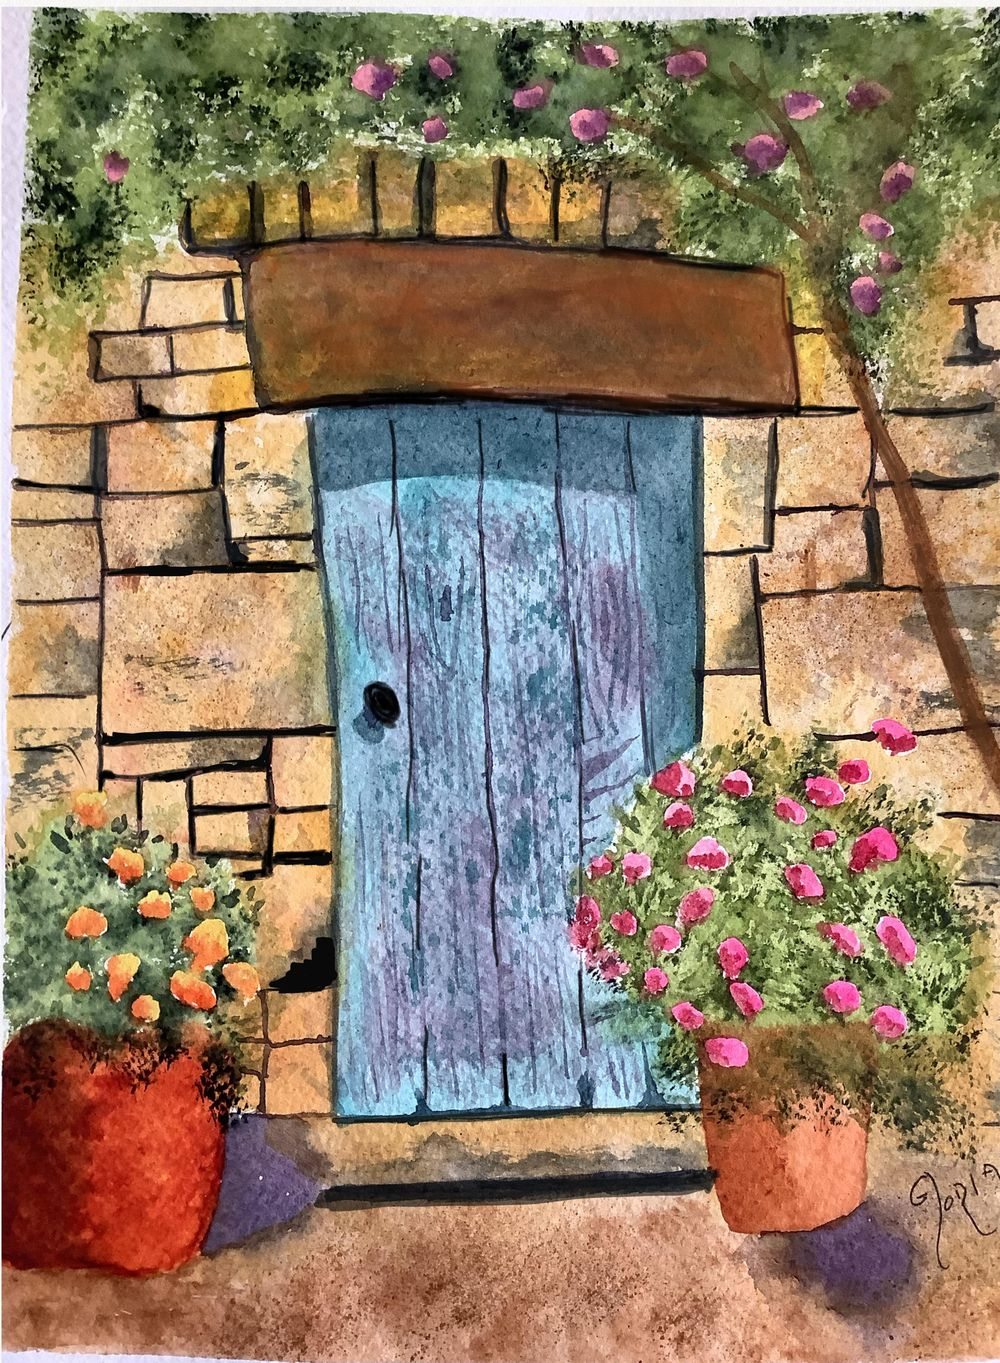 Inviting Blue Door - image 1 - student project